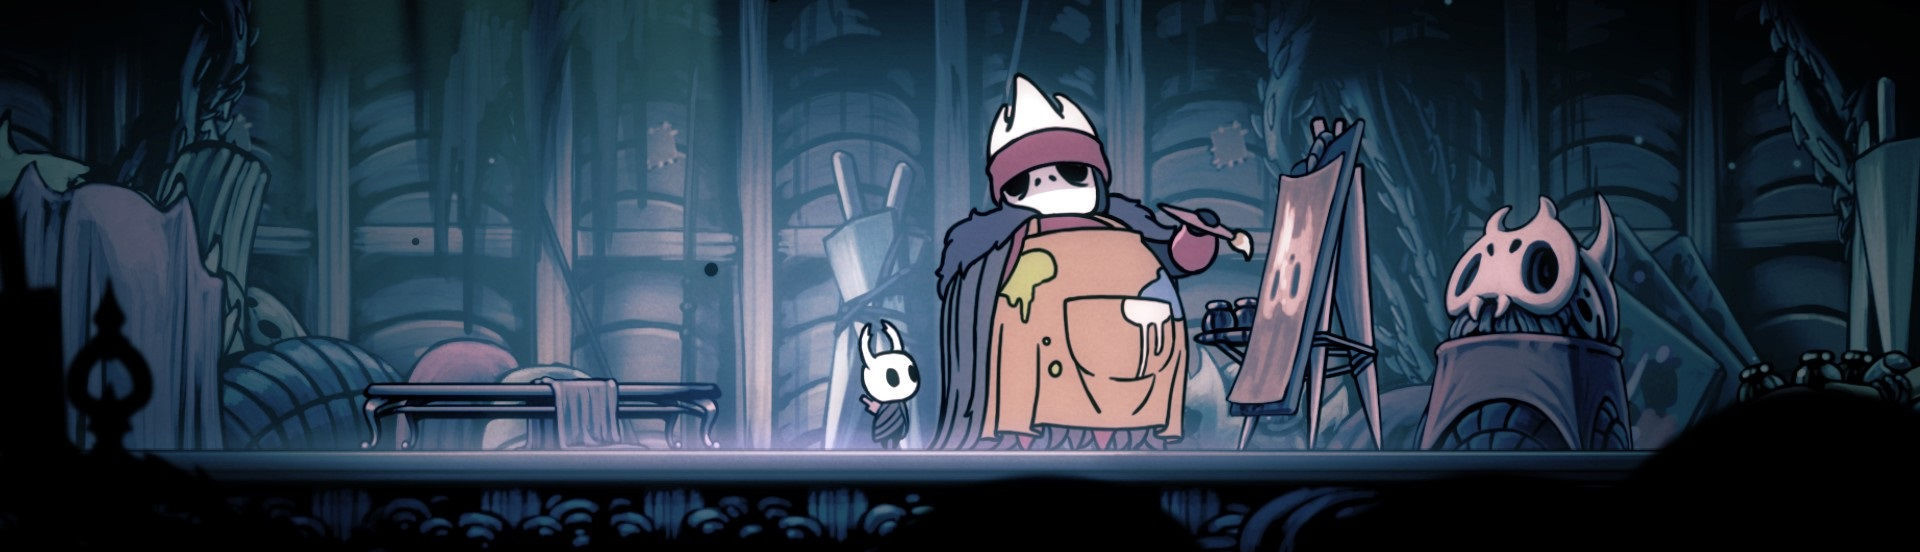 hollow_knight13